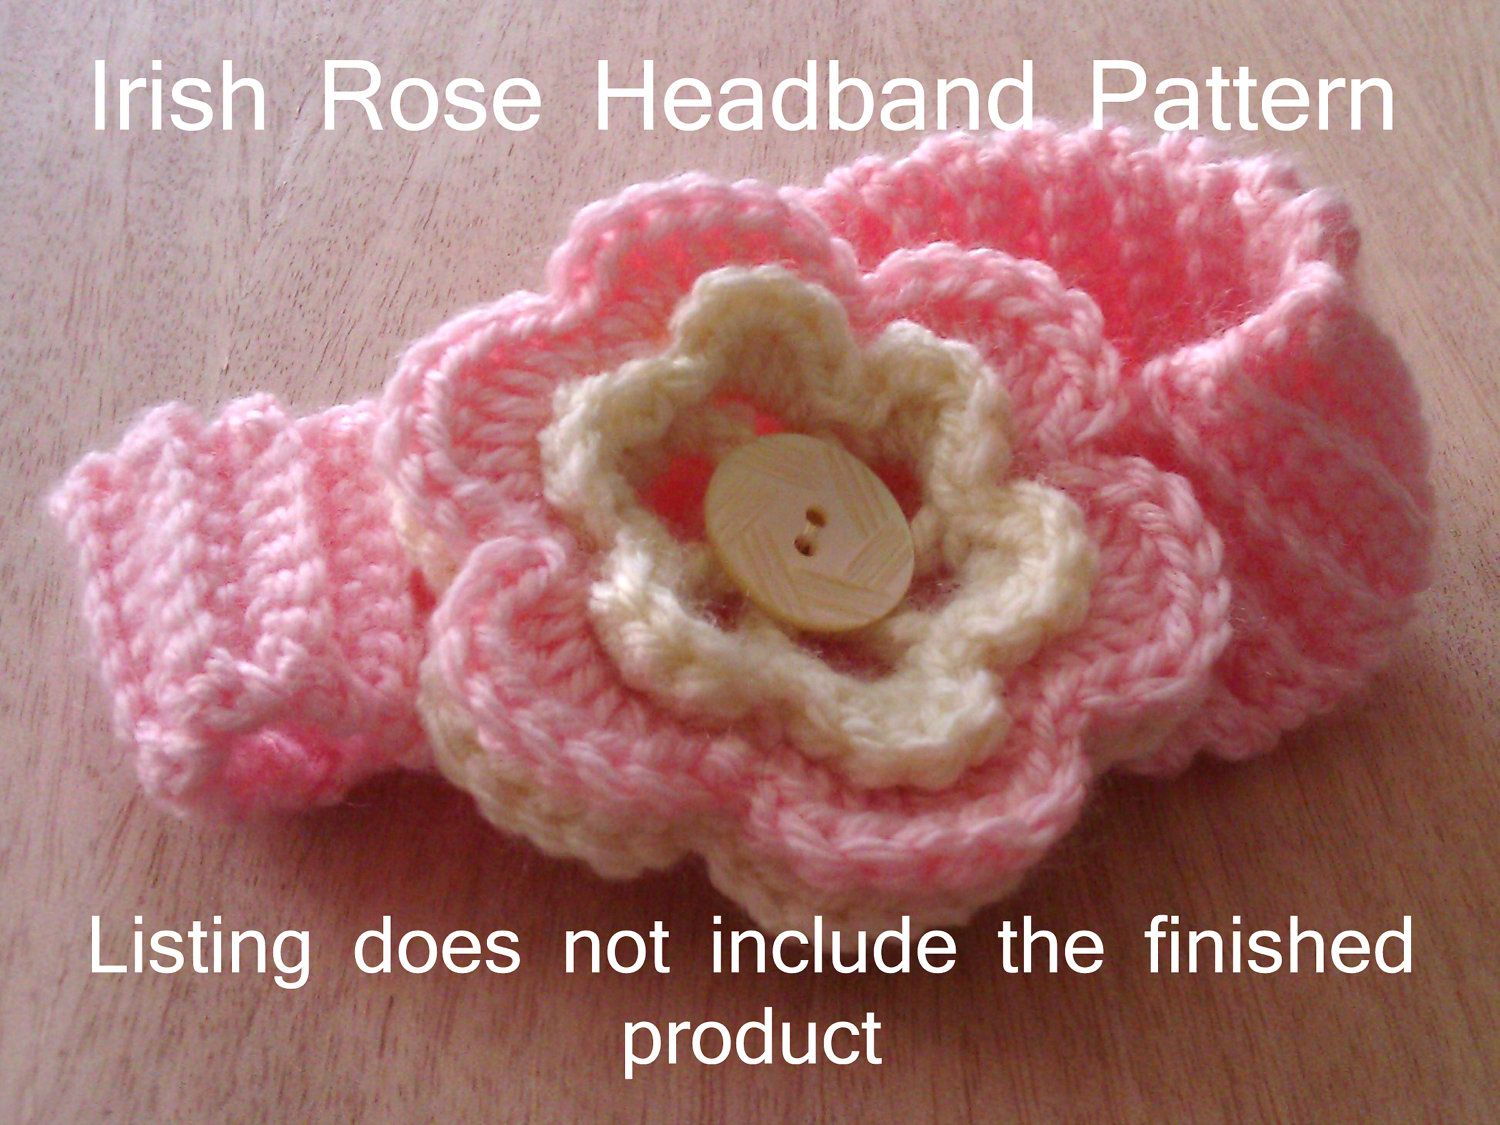 Free Baby Crochet Patterns | Baby Girl Irish Rose Headband Crochet ...